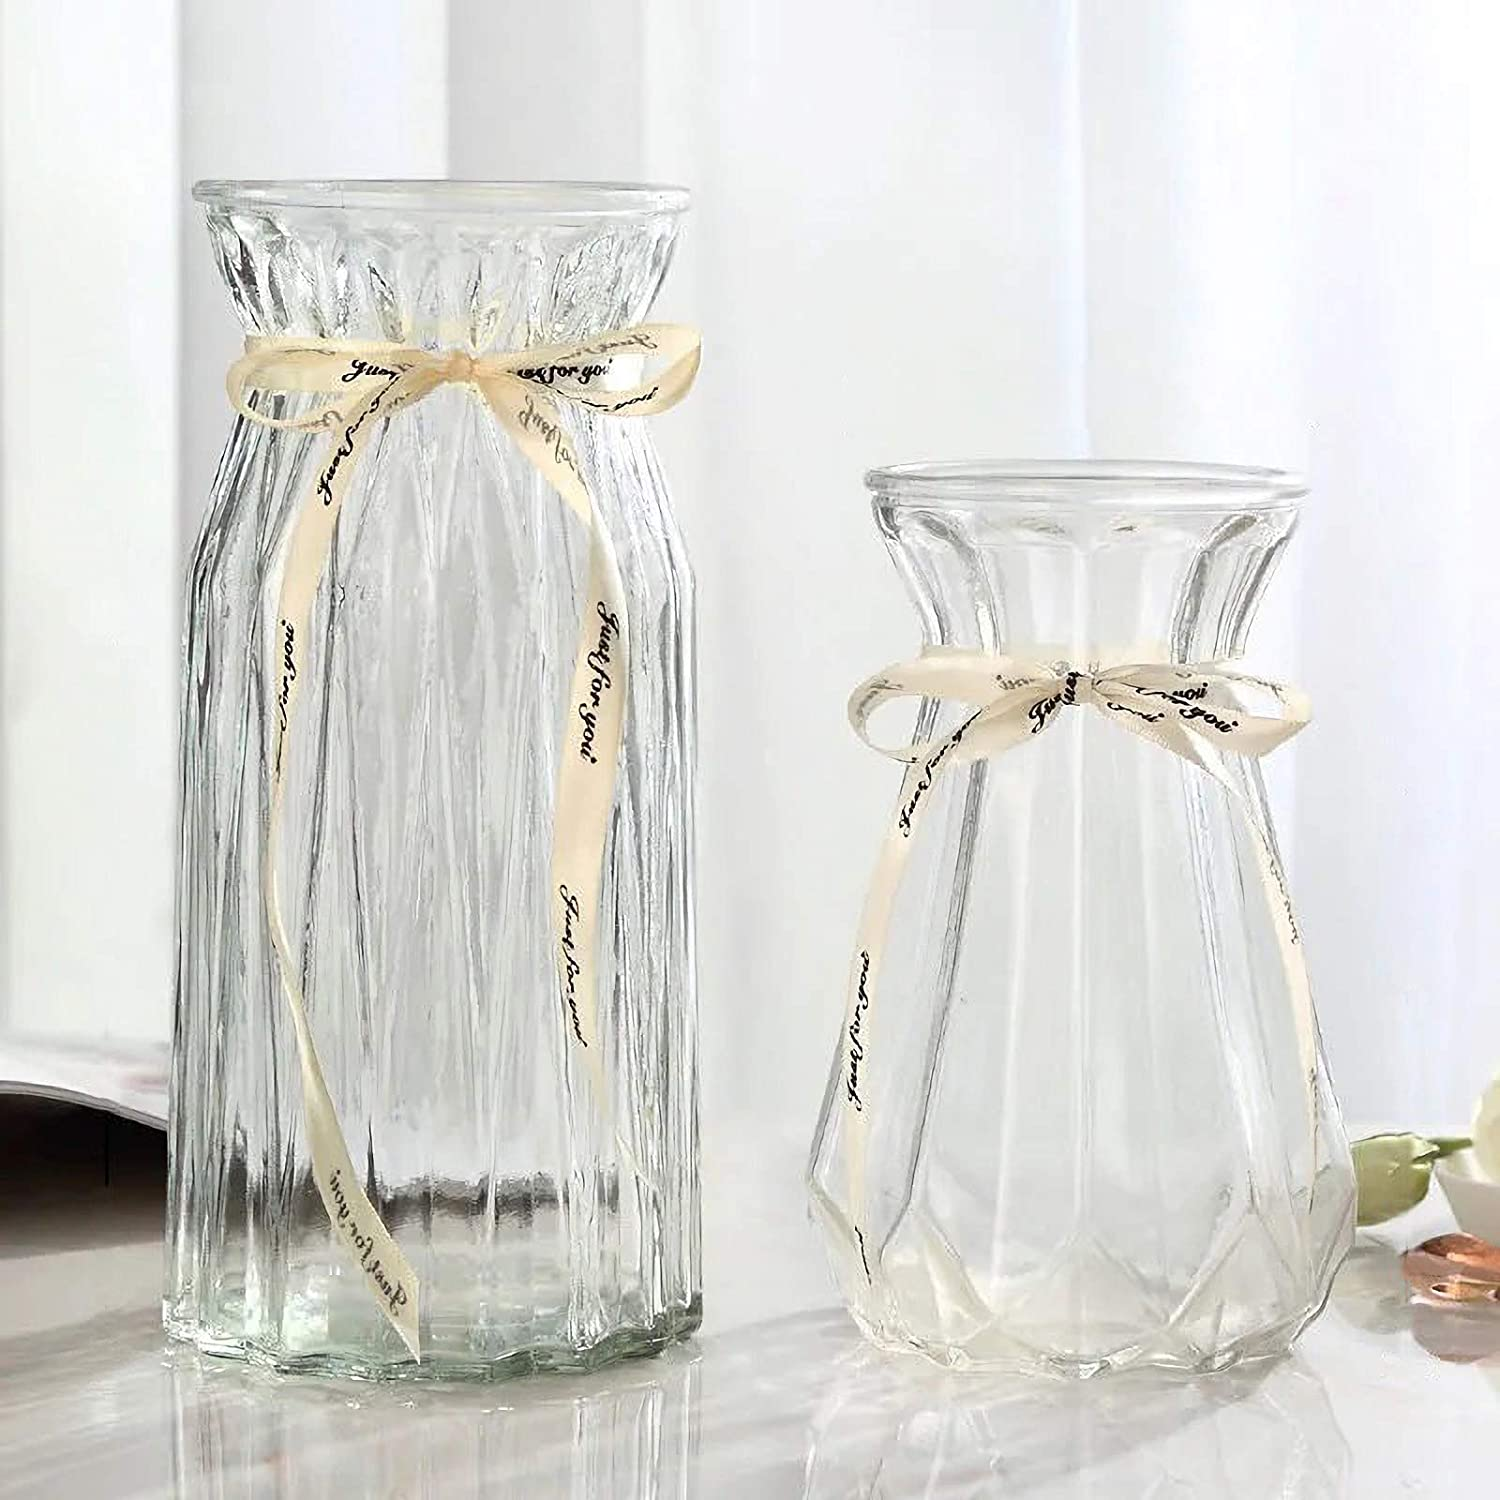 XILEI Glass Vases for Flowers,Clear Bud Vase Set of 2 ,Flower Vase Decorative for Home Decor, Desk Placement and Gift (C2)